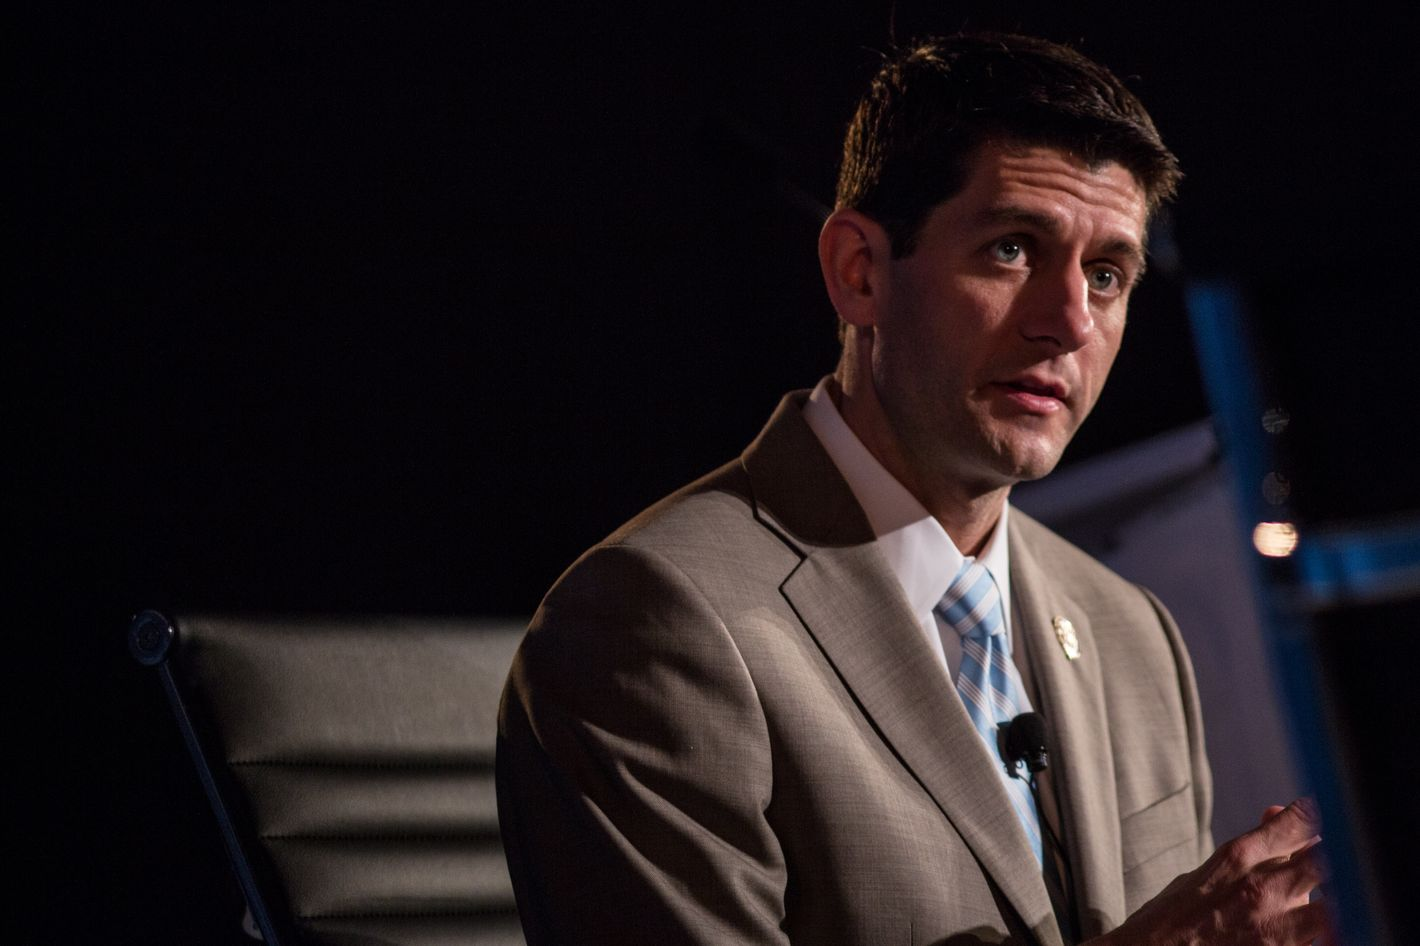 """WASHINGTON, DC - MAY 15: House Budget Committee Chairman U.S. Rep. Paul Ryan (R-WI) speaks at the 2012 Fiscal Summit on May 15, 2012 in Washington, DC. The third annual summit, held by the Peter G. Peterson Foundation, explored the theme """"America's Case for Action."""" (Photo by Brendan Hoffman/Getty Images)"""